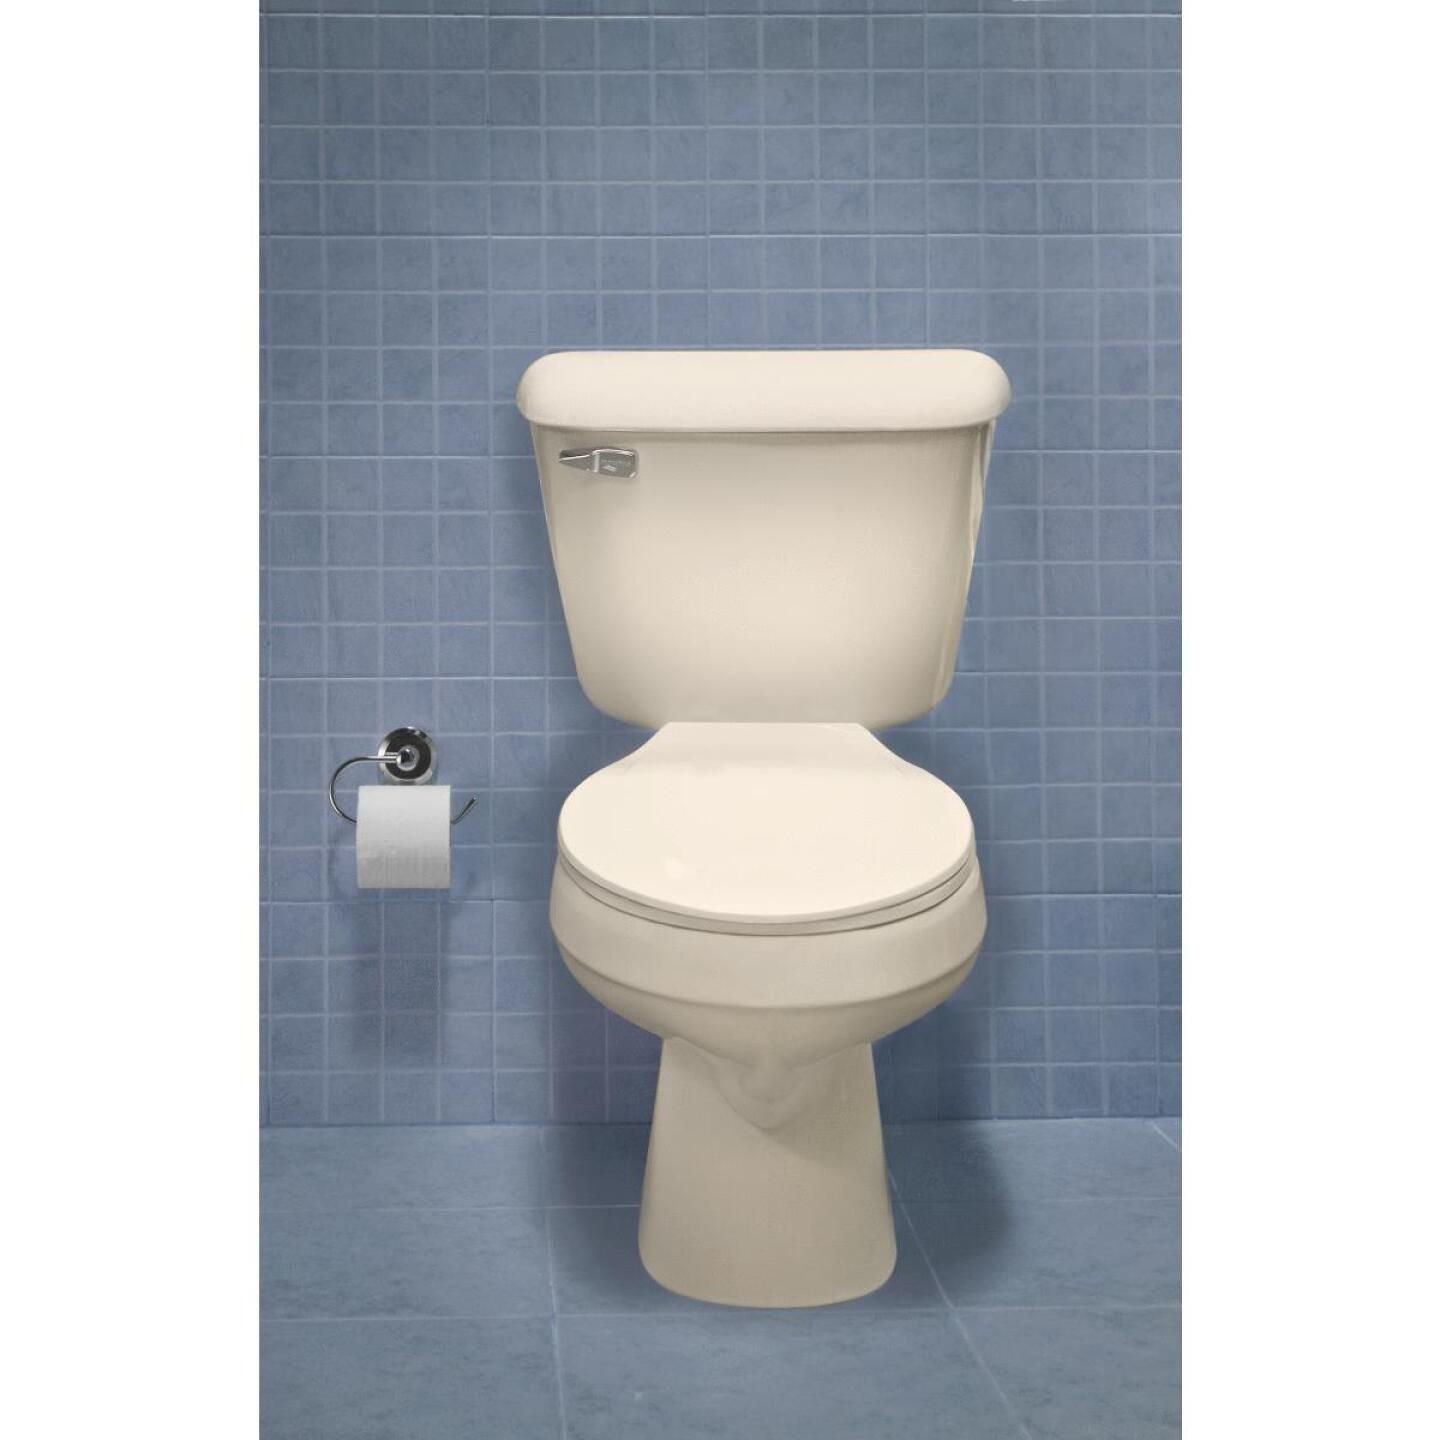 Mansfield Pro-Fit 1-128 HET Biscuit Round Bowl 1.28 GPF Complete Toilet Image 4